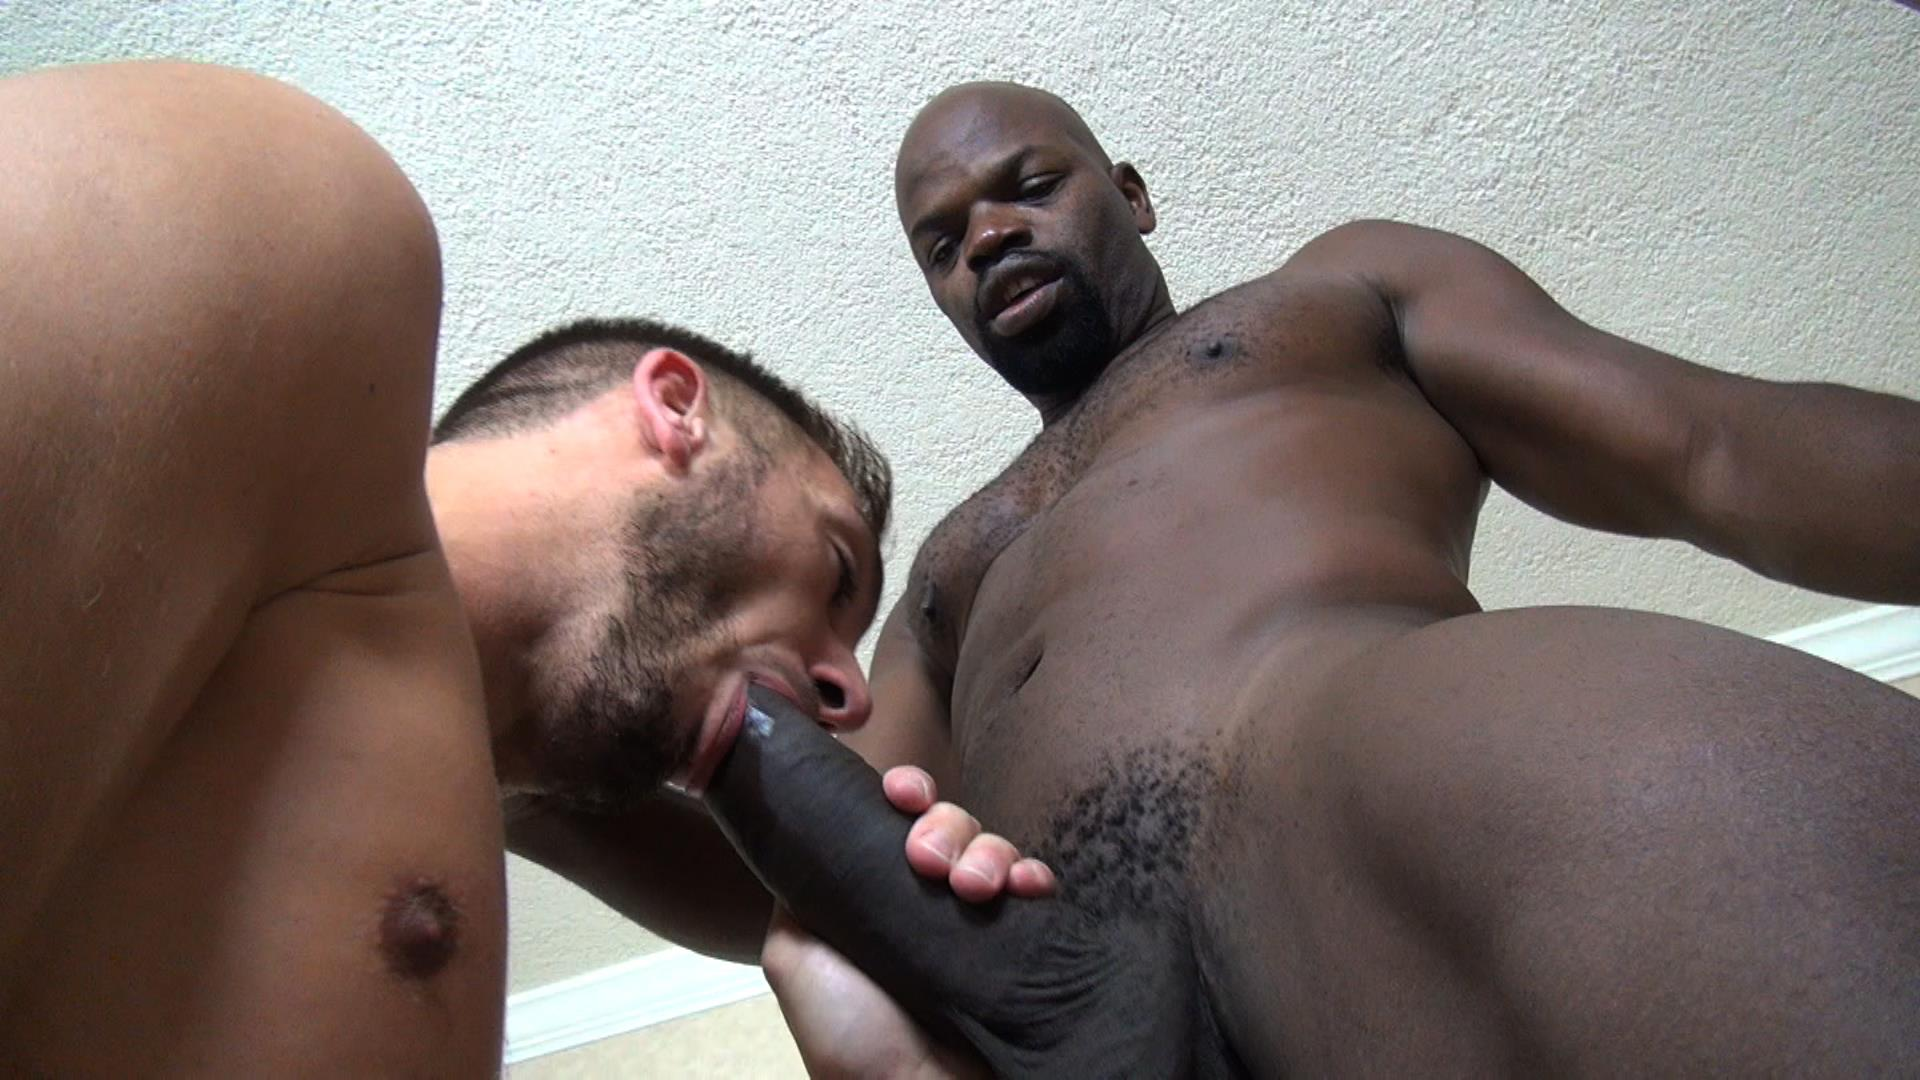 Gay black tube videos